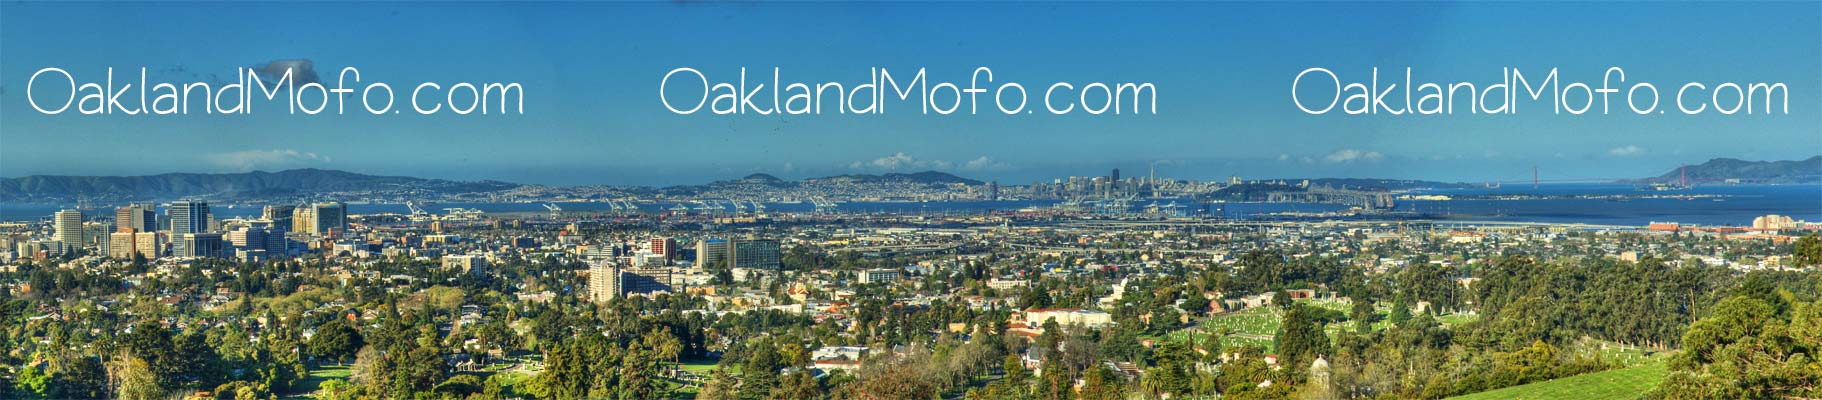 Oakland San Francisco Bay Area Panoramic picture